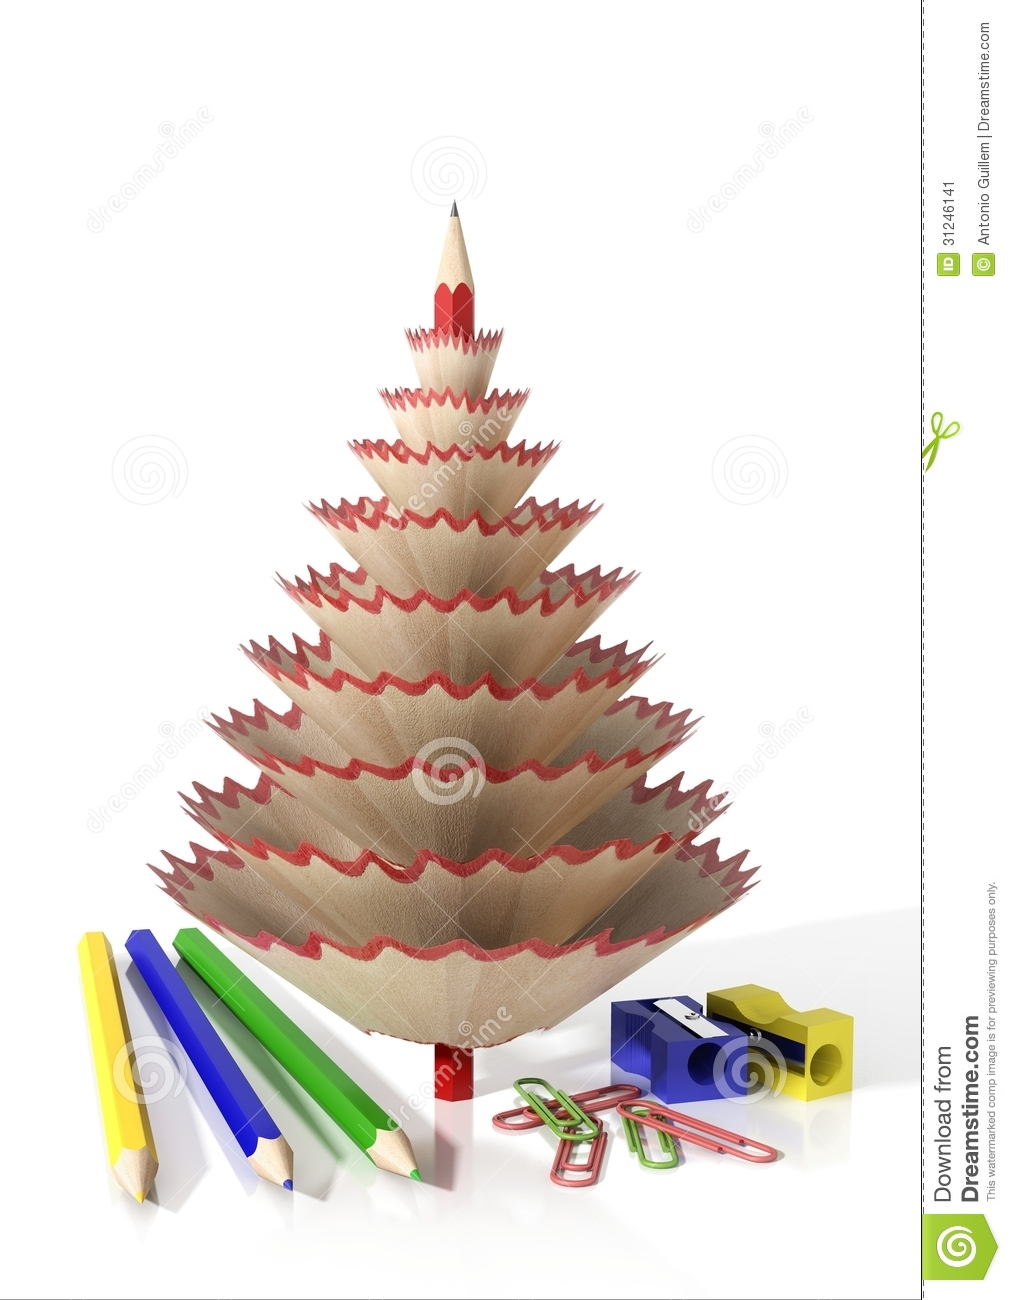 Render of office supplies and a tree made with pencil